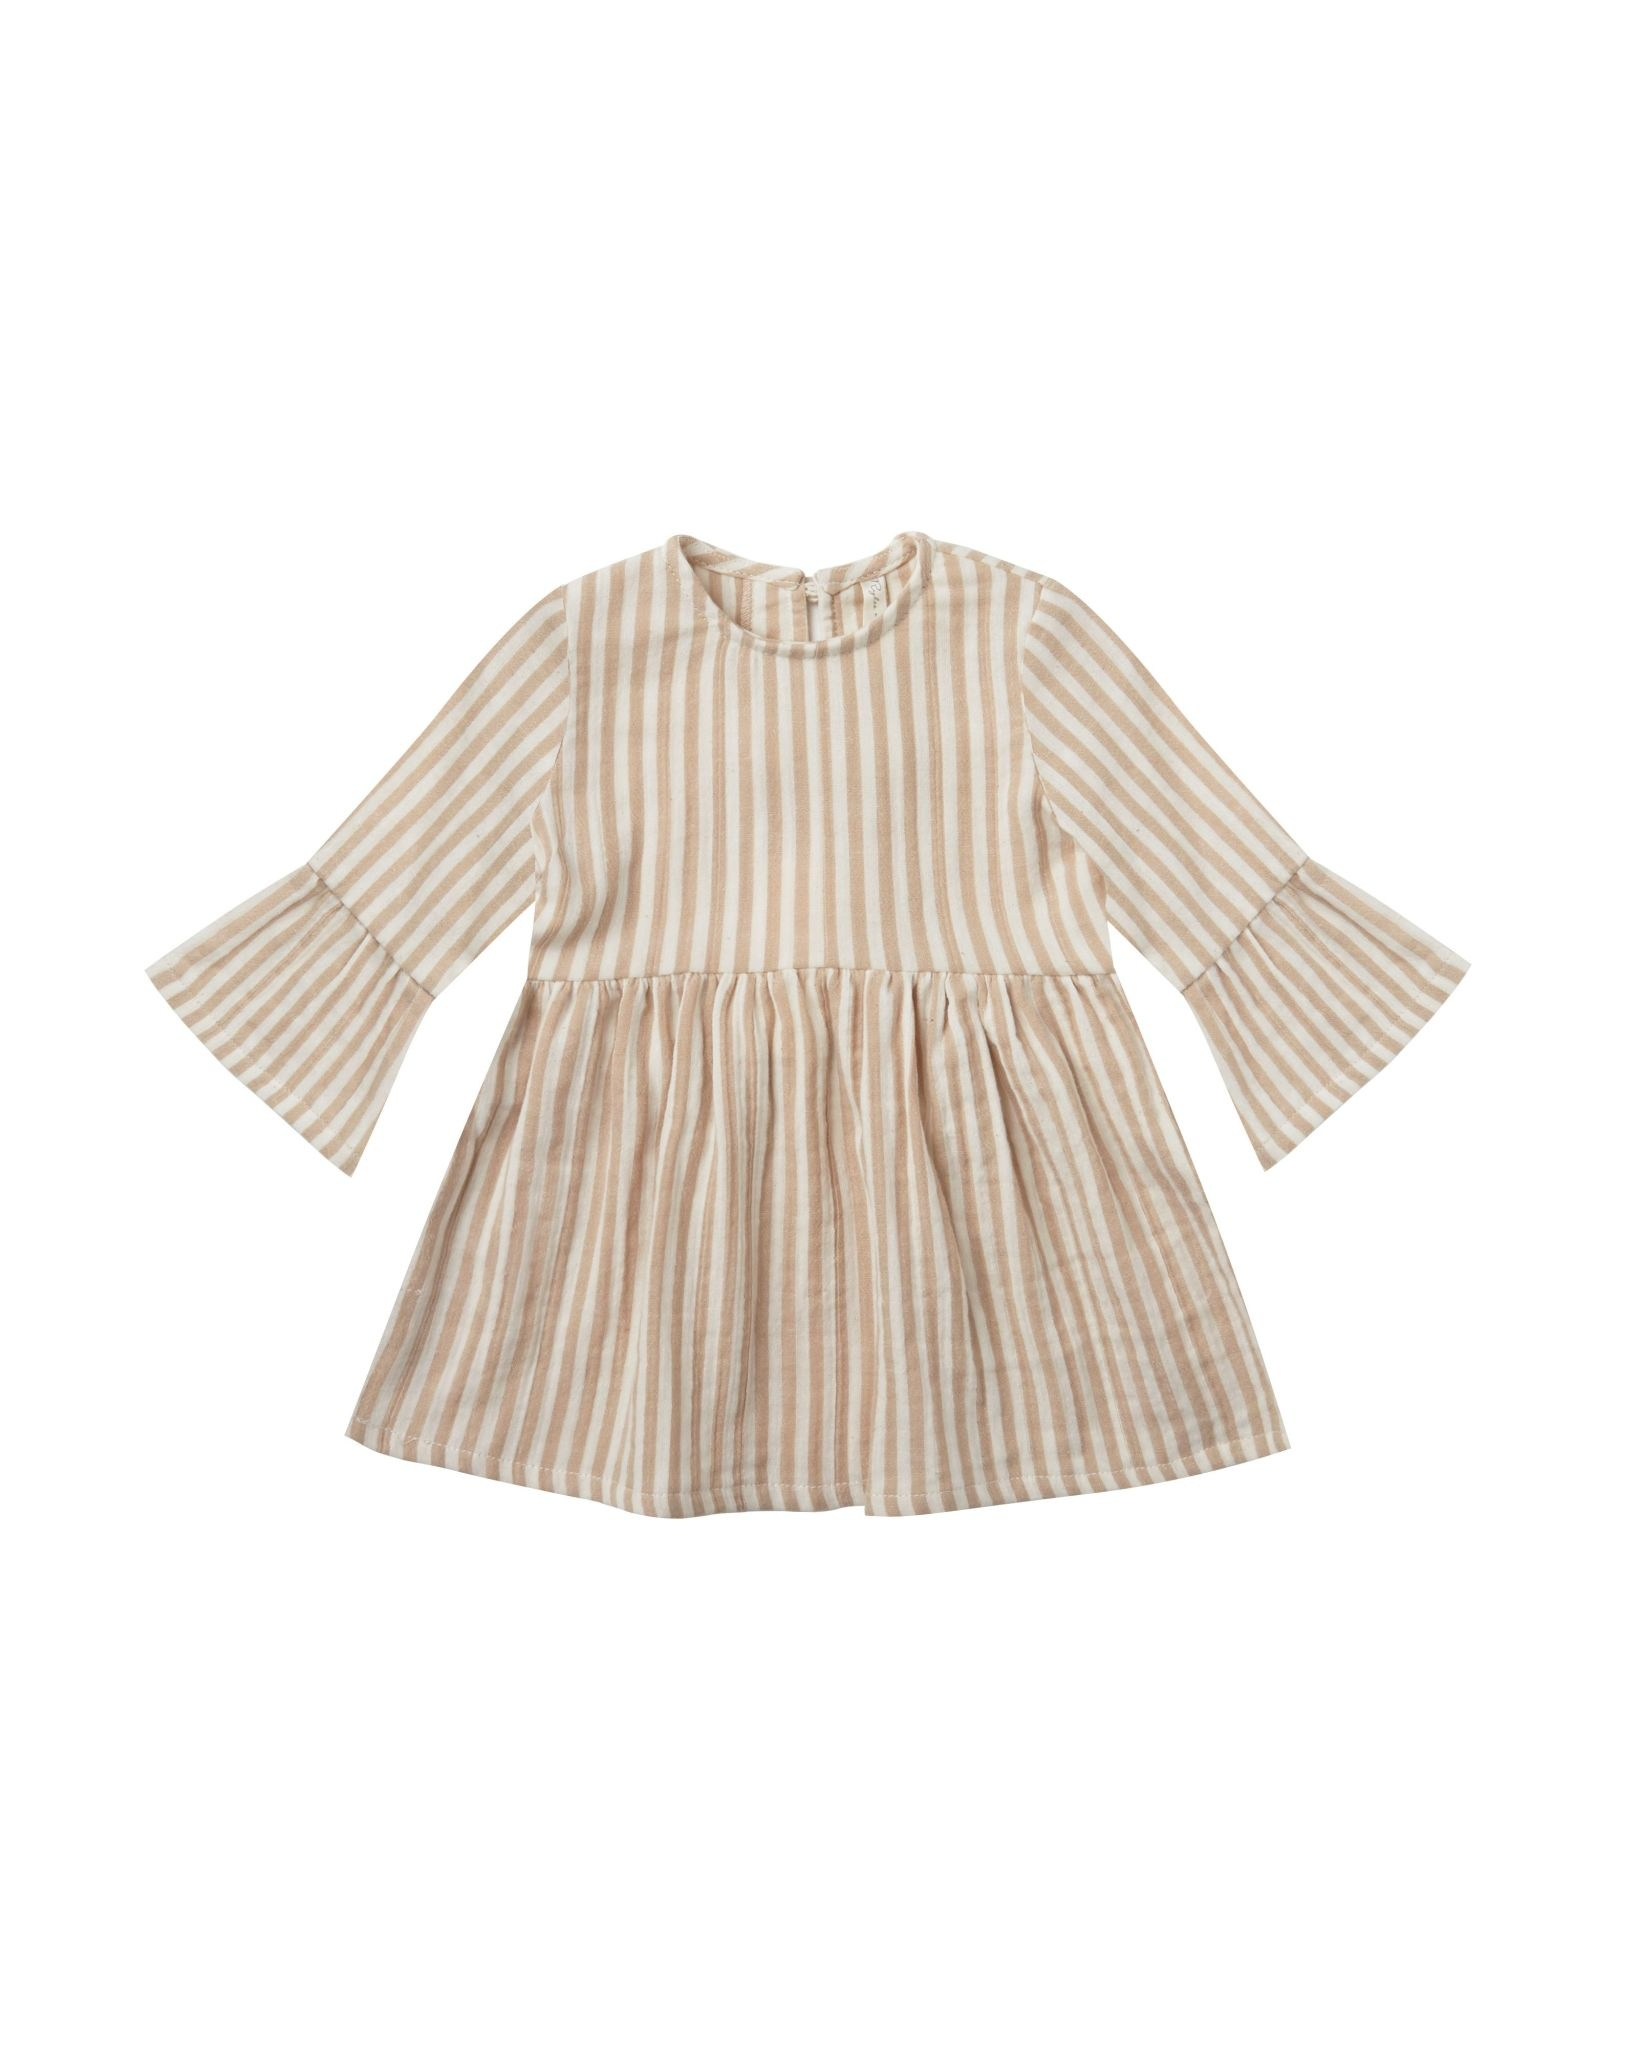 Rylee + Cru Rylee + Cru | Bel Dress Almond Stripe